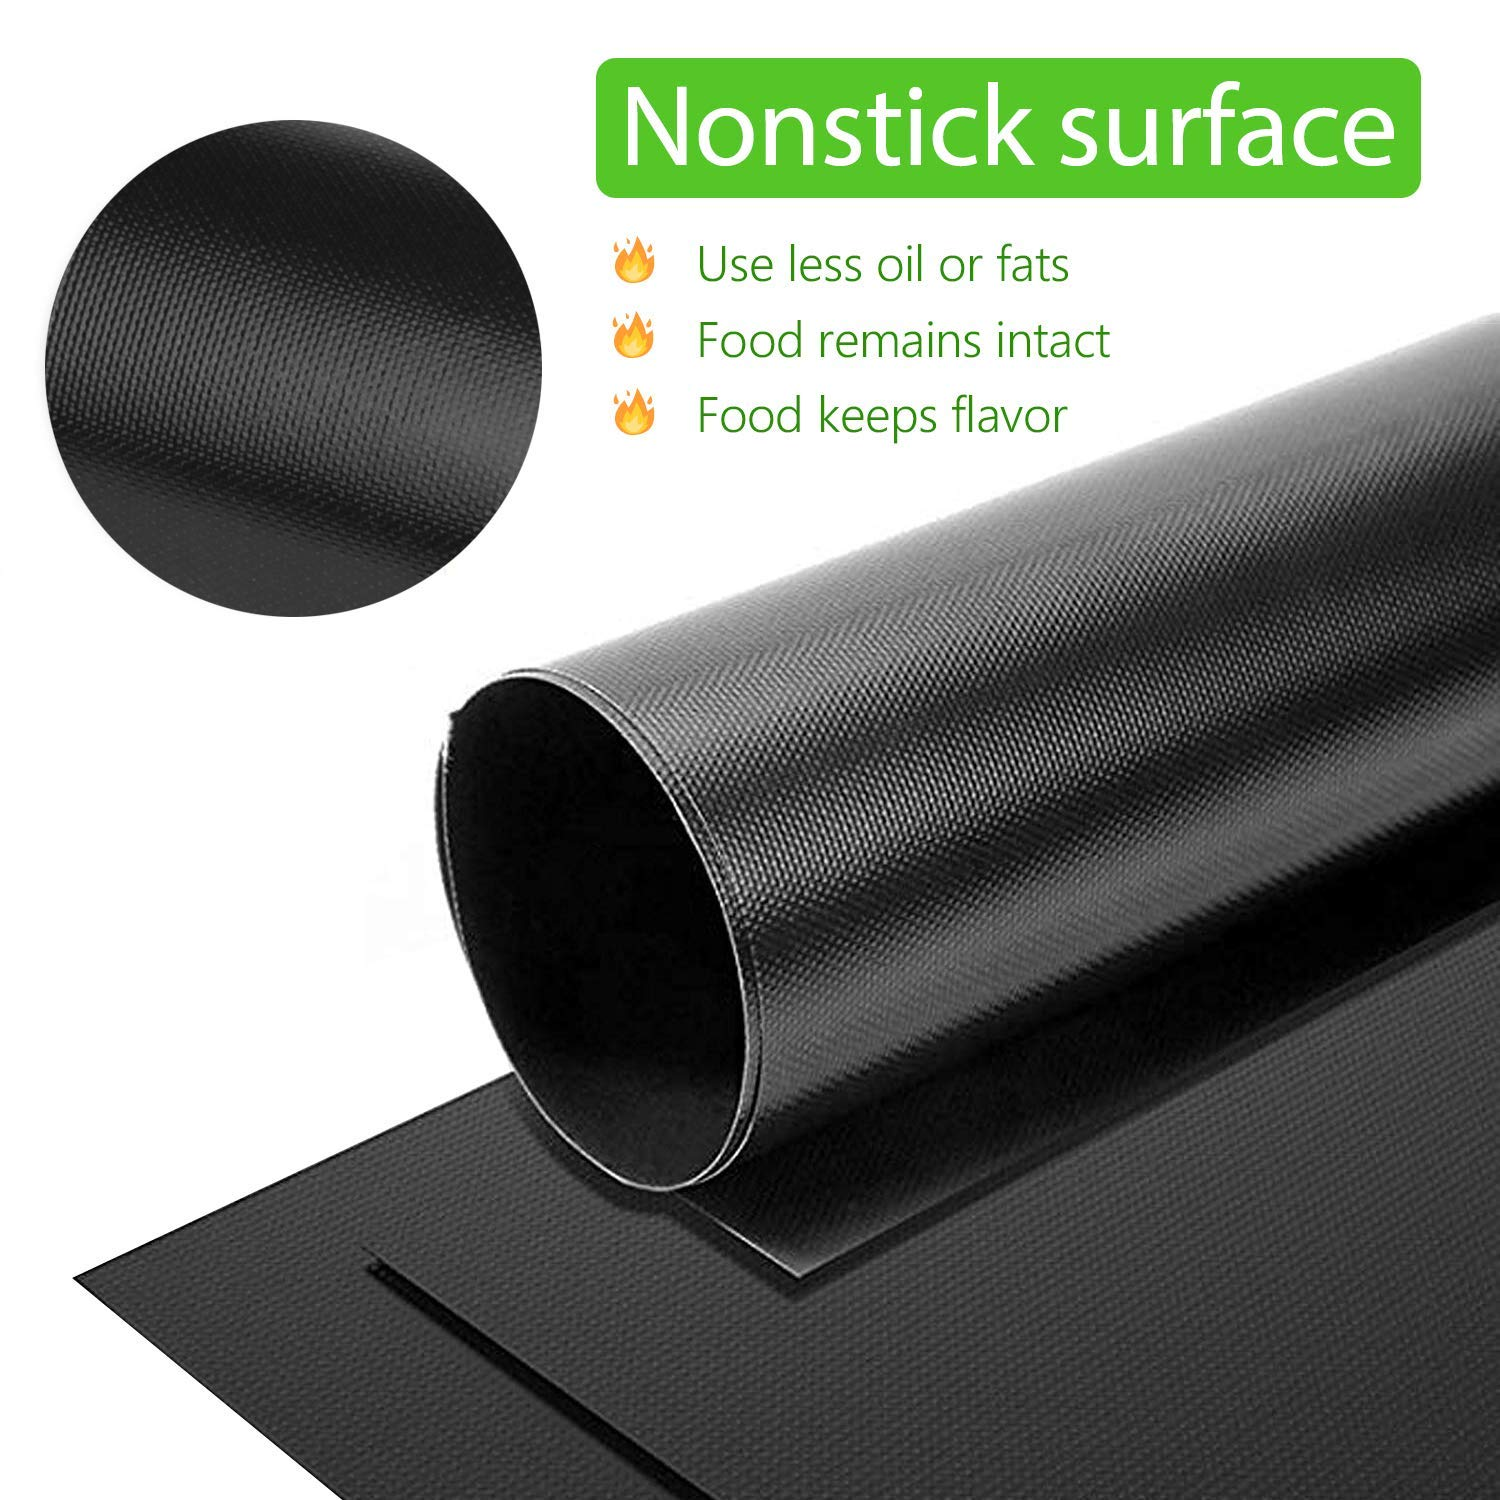 BBQ Grill Mat, Non Stick Reusable Barbecue Grill Mat Heat Resistant Heavy Duty Barbeque Grilling Sheets Work on Gas Charcoal Electric Grill, FDA Approved, Easy to Clean, Set of 5 Black 15.75